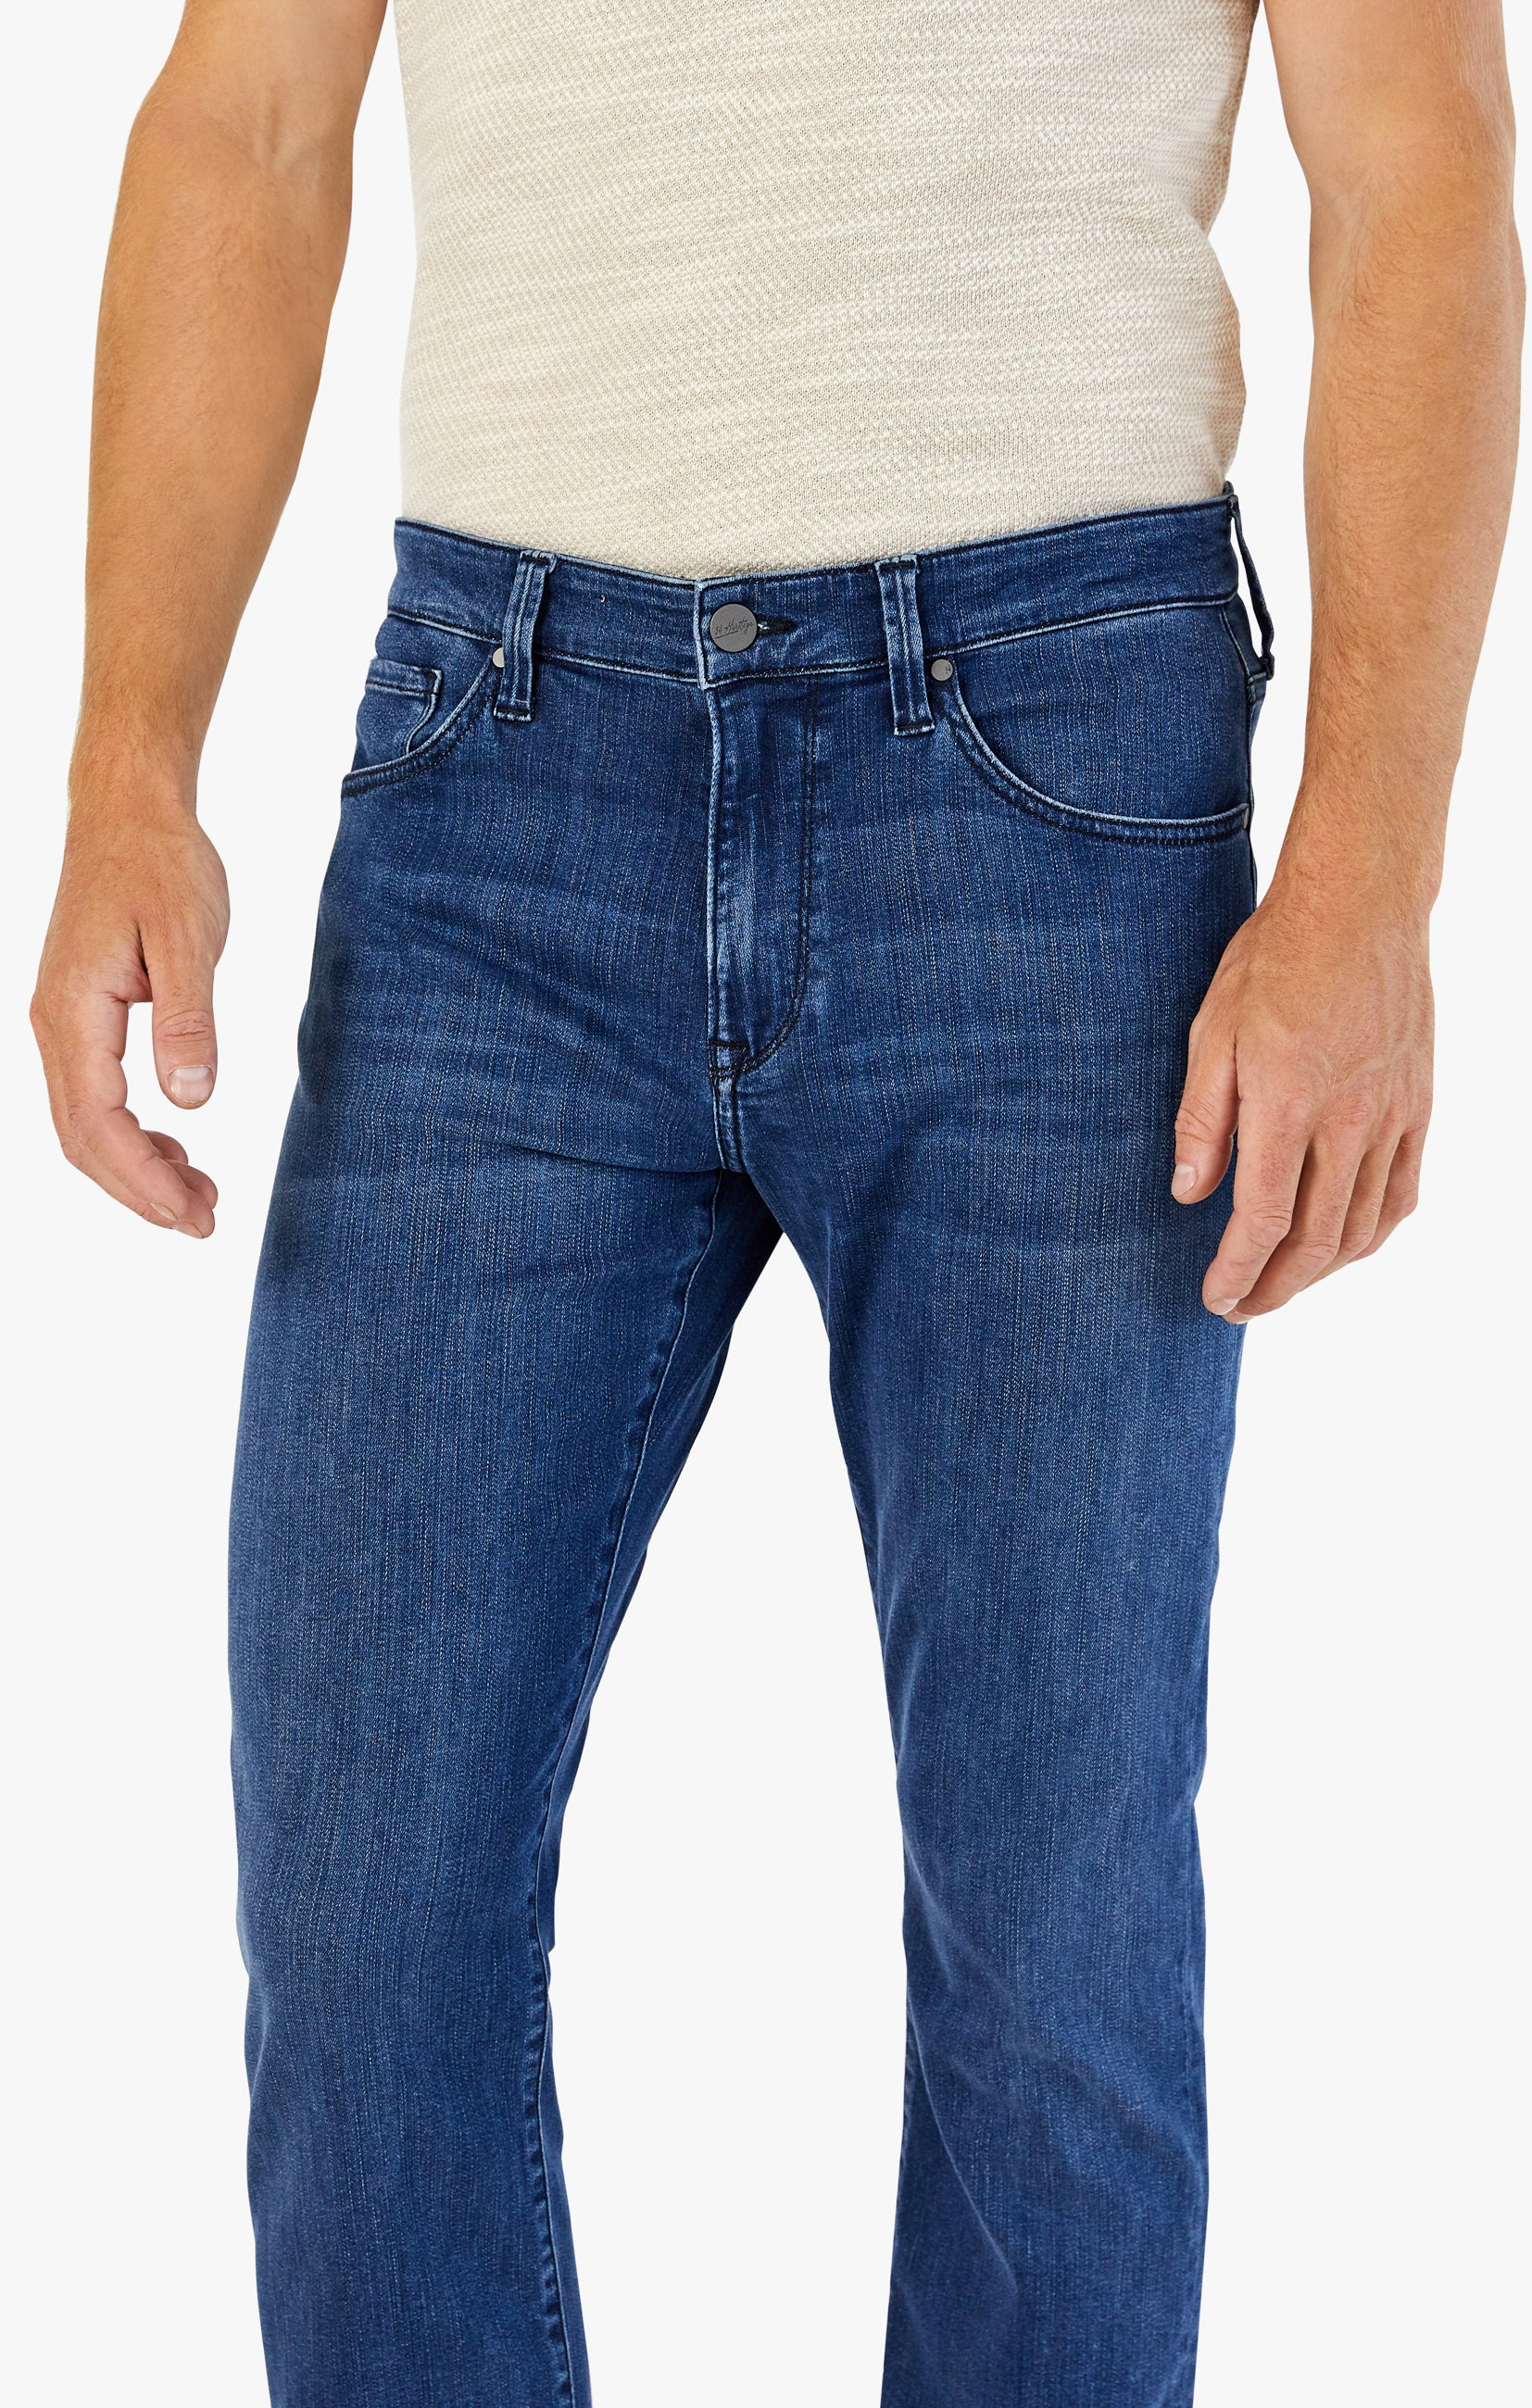 Charisma Relaxed Straight Jeans In Dark Indigo Ultra Image 5